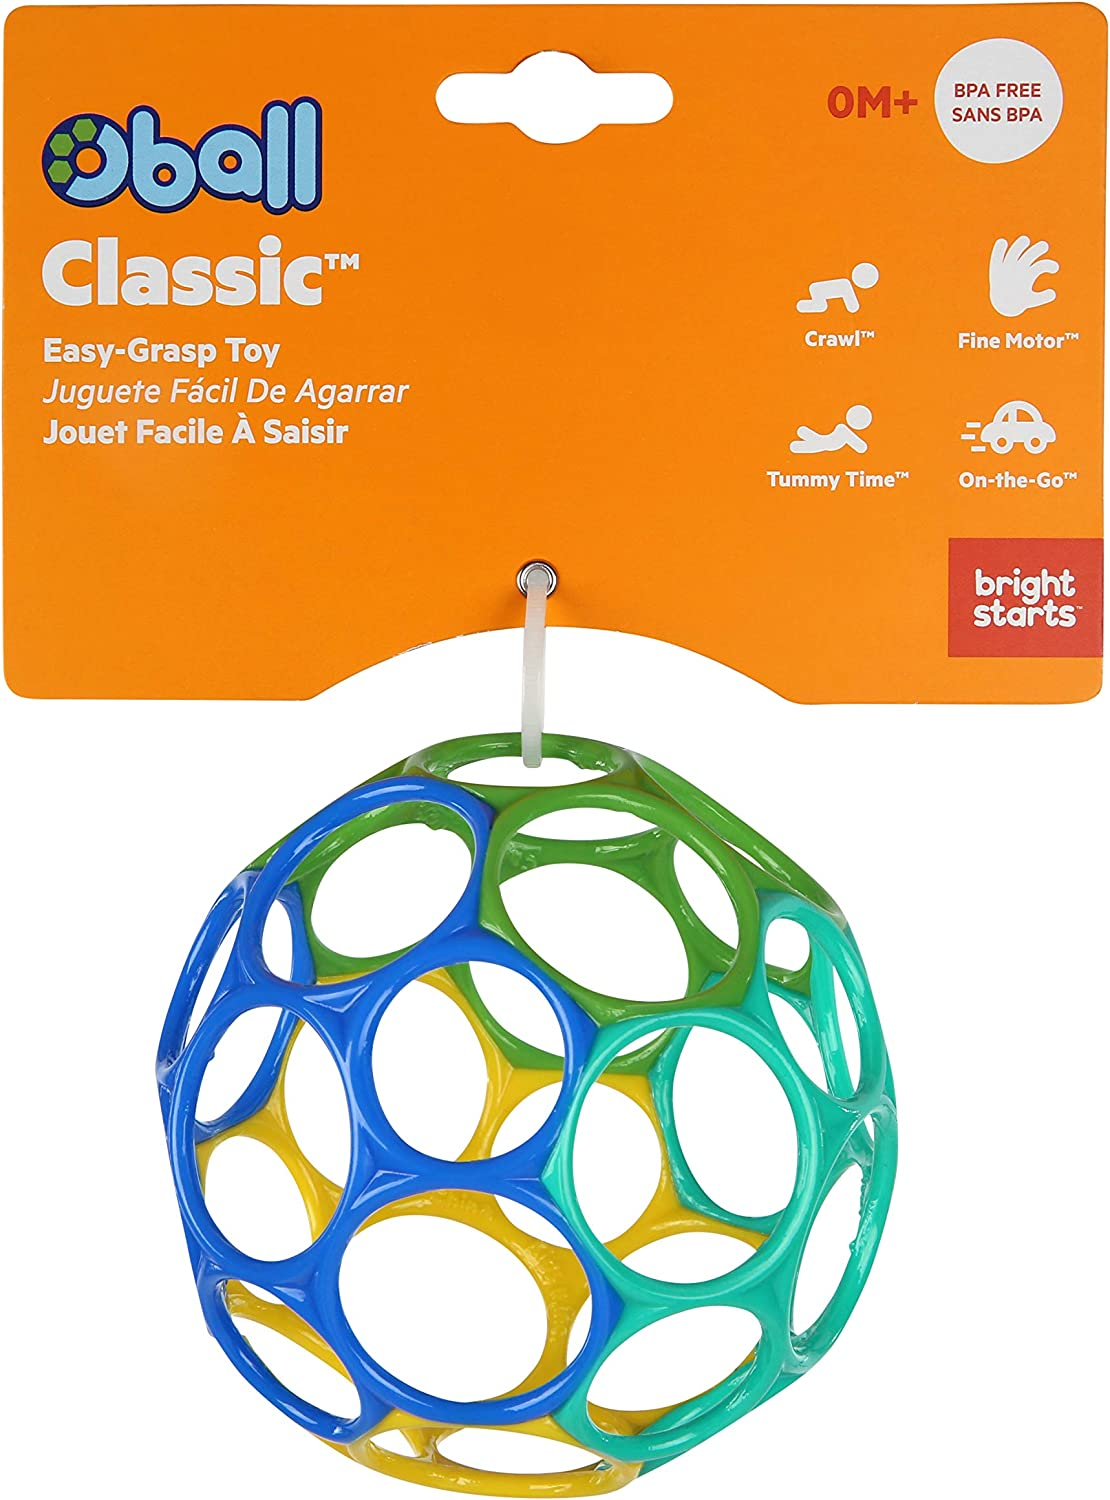 Bright Starts Oball Classic Easy-Grasp Toy